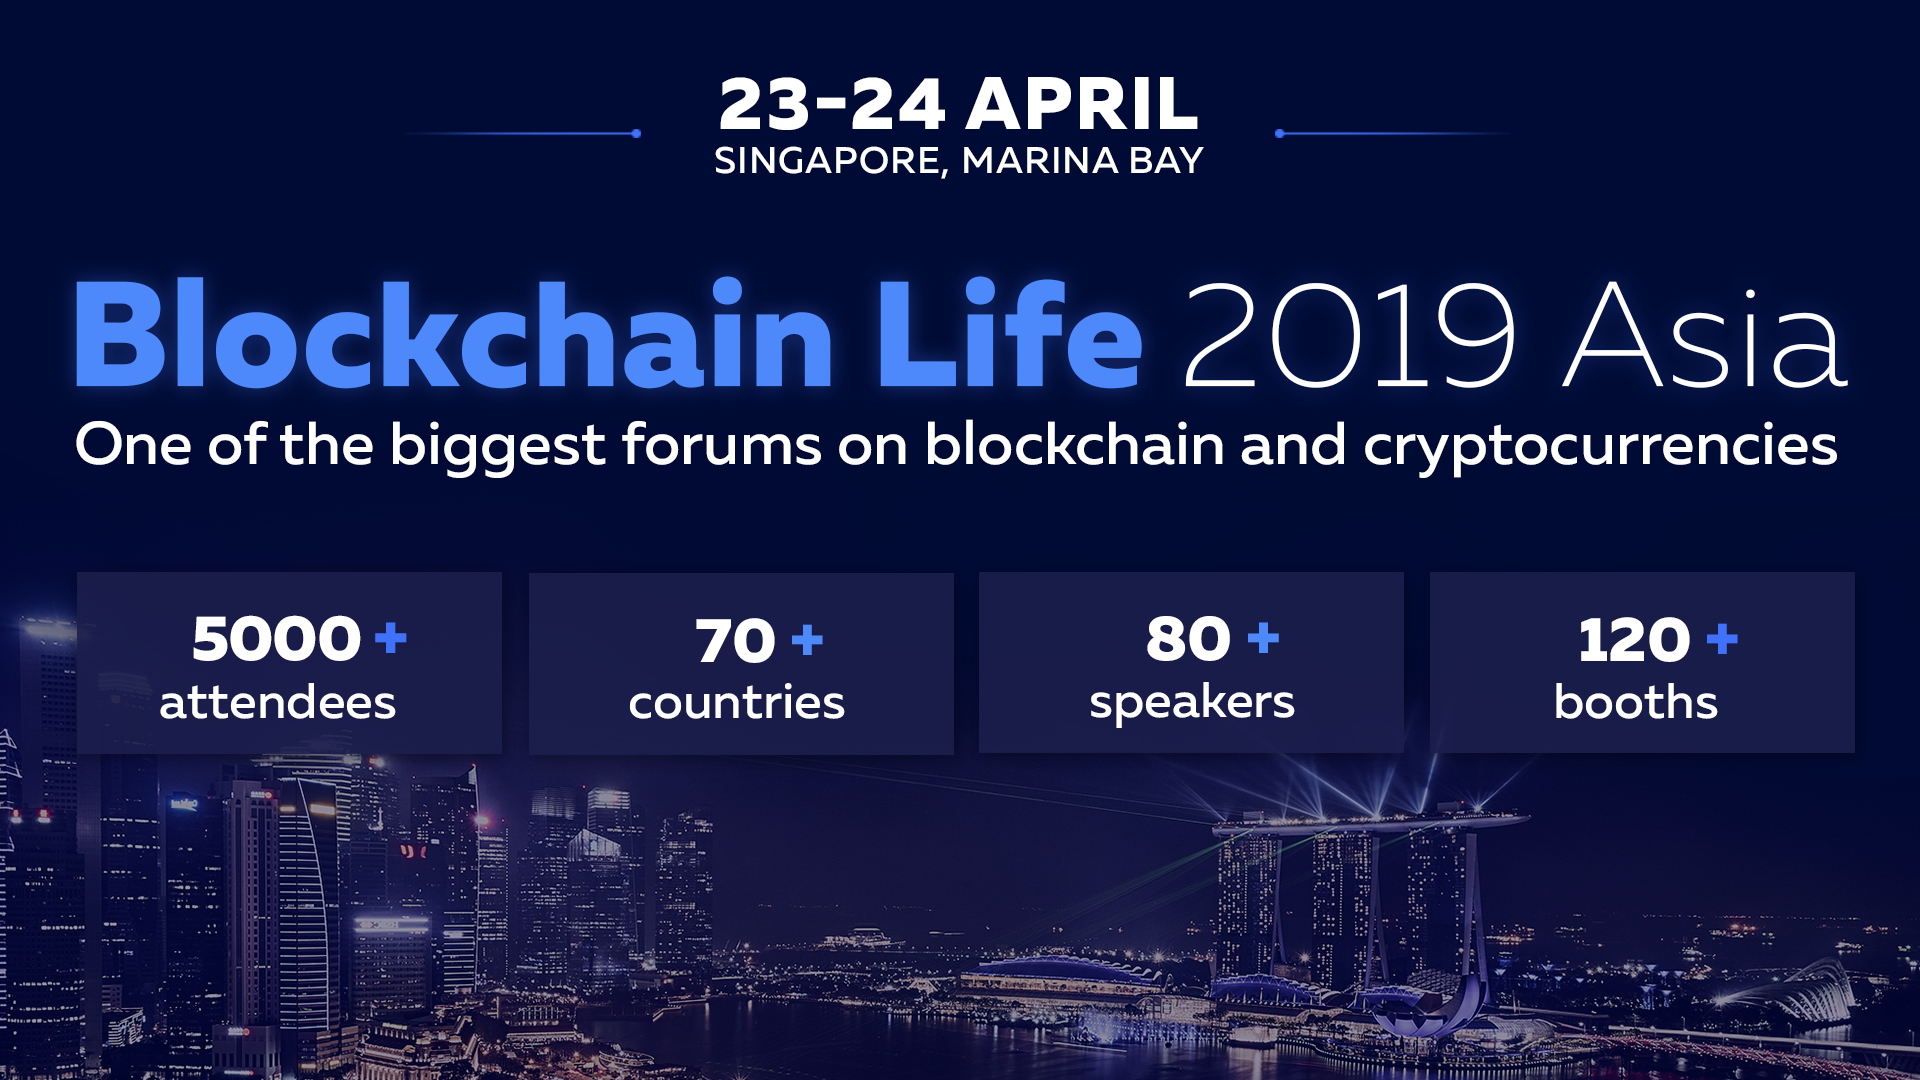 23-24 April Singapore hosts Blockchain Life 2019 – a global forum on blockchain and cryptocurrencies